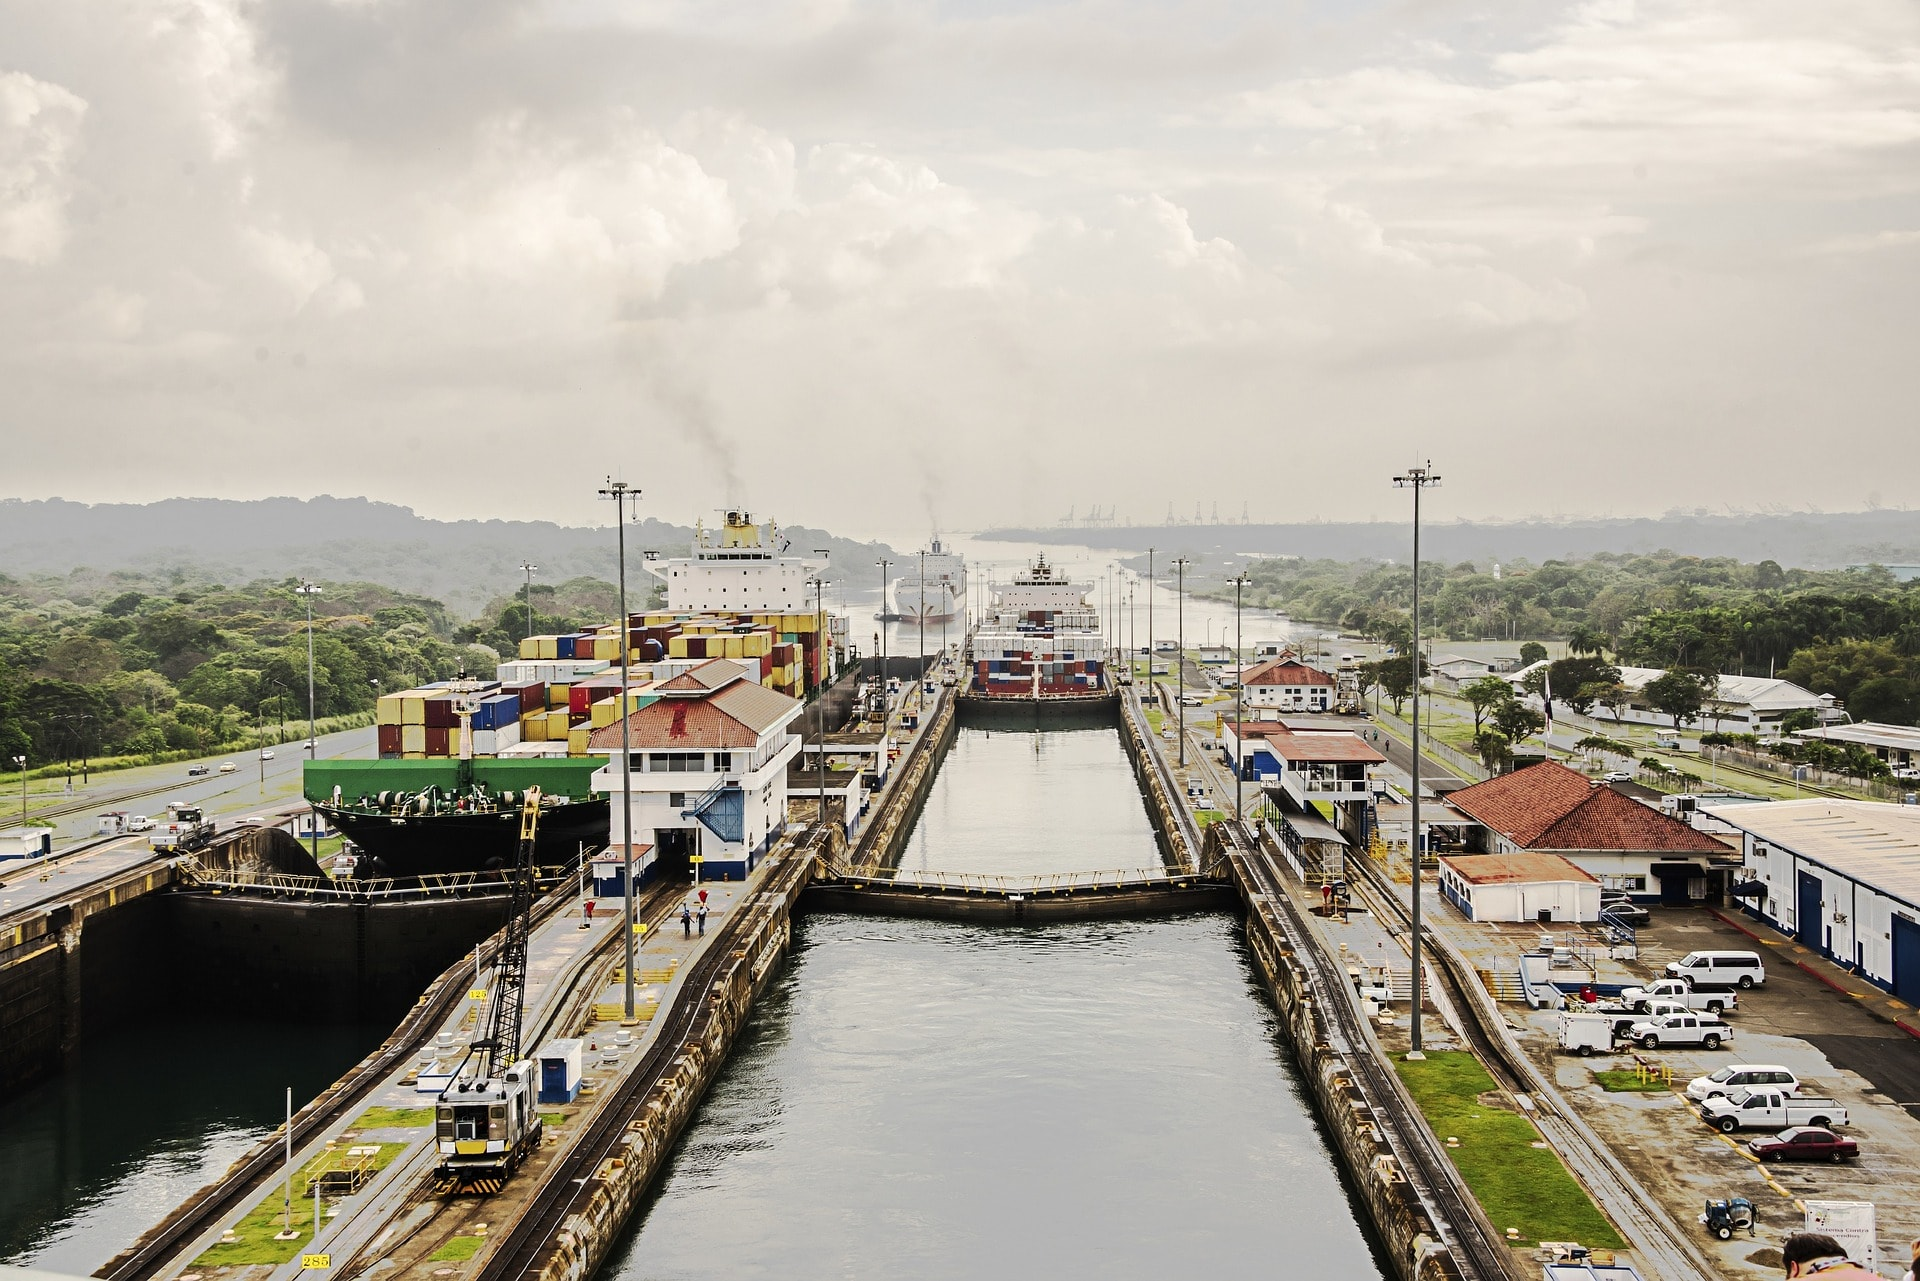 The Panama Canal opening for ships to enter